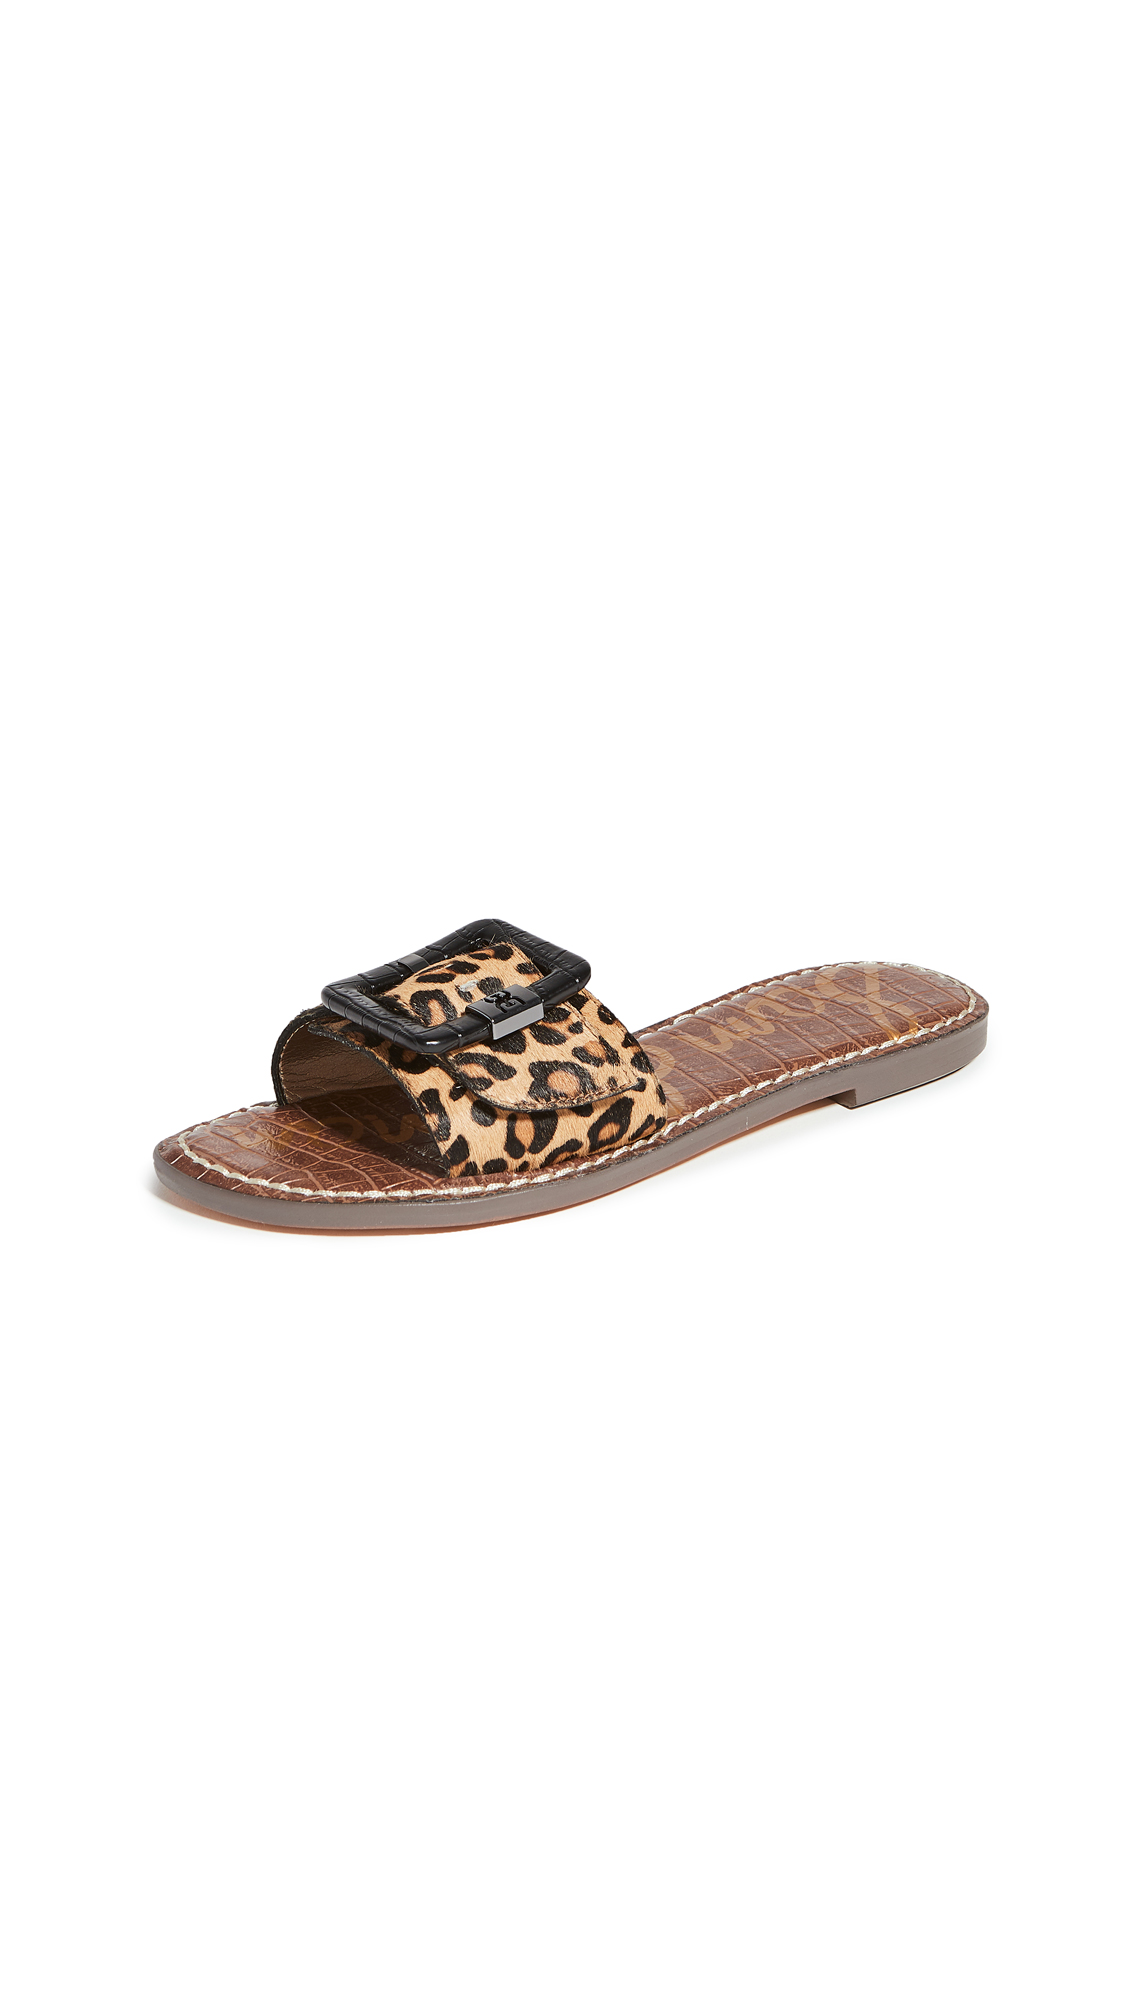 Sam Edelman Granada Slides - 30% Off Sale